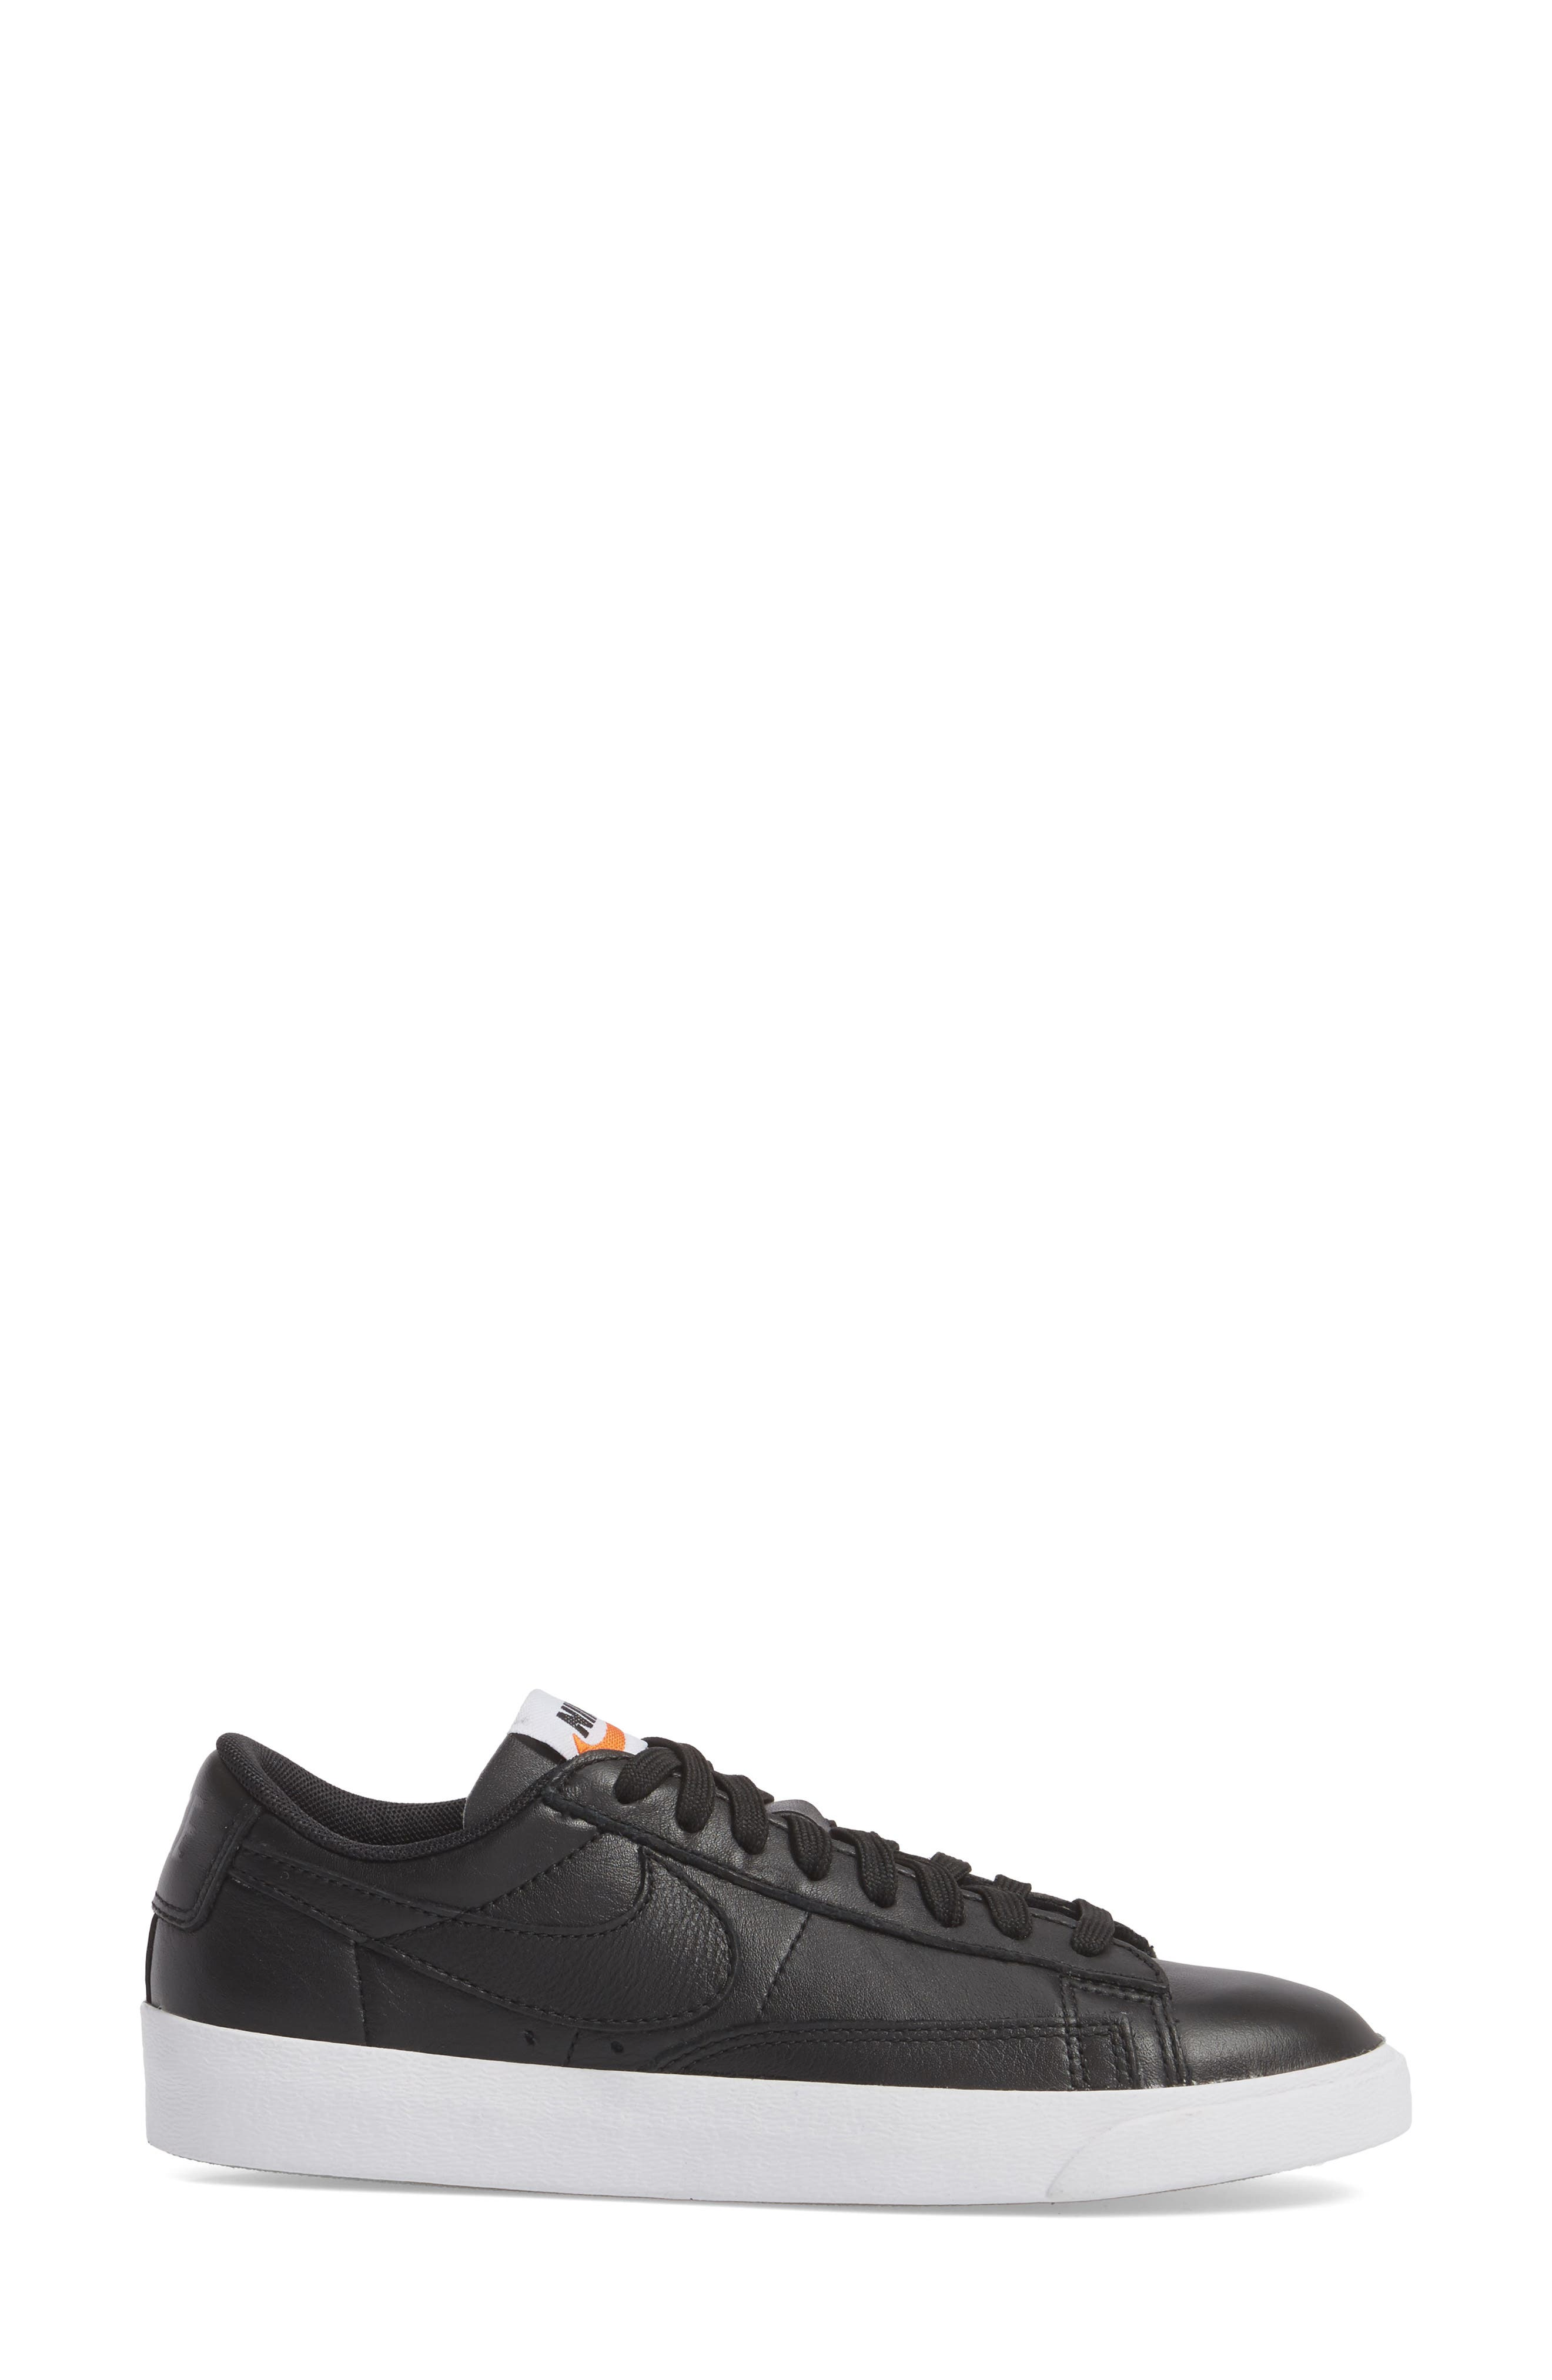 Blazer Low LE Basketball Shoe,                             Alternate thumbnail 3, color,                             Black/ Black/ White